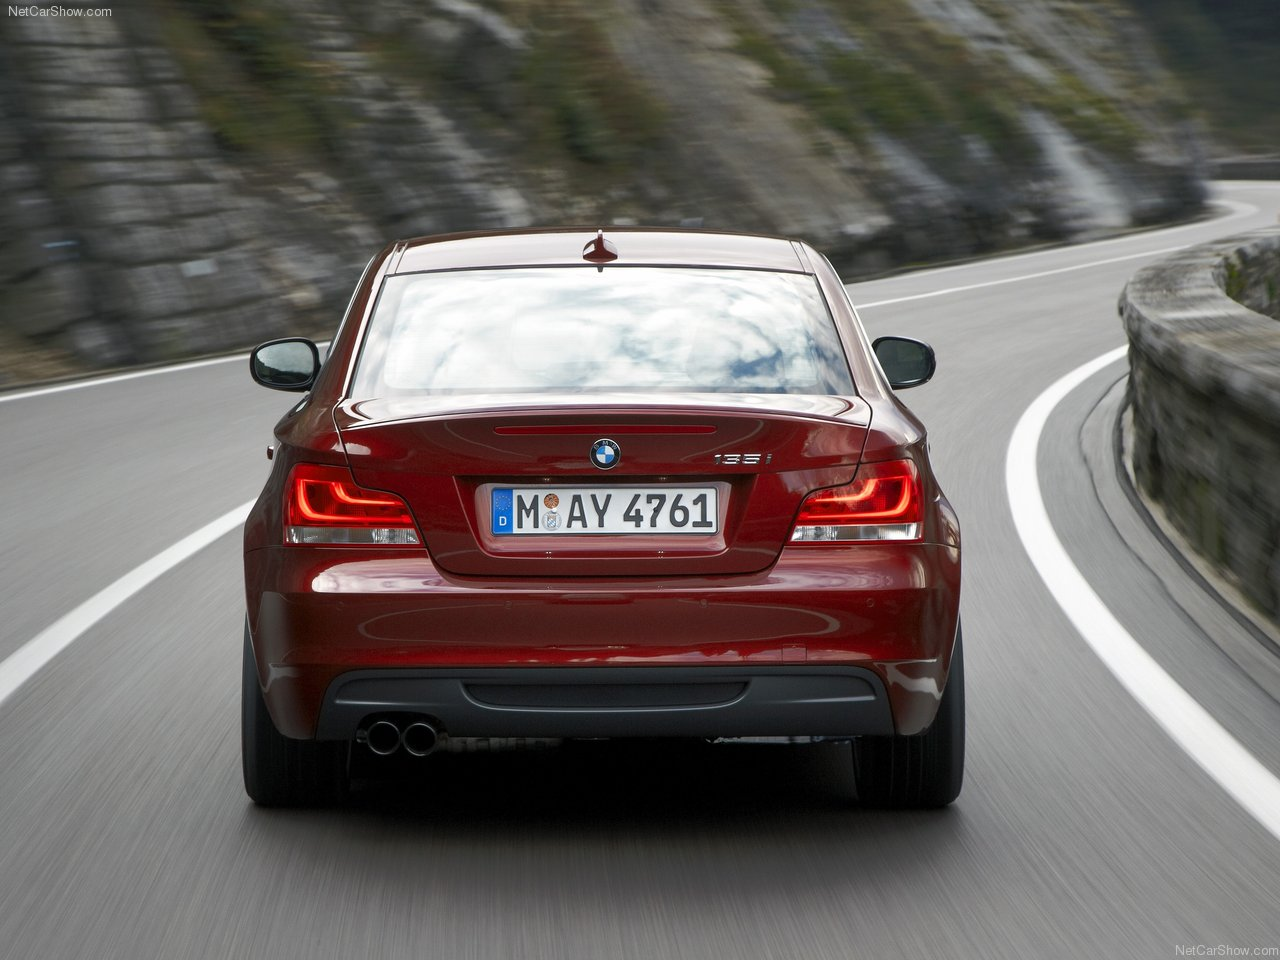 BMW 1 series 135is 2012 photo - 9